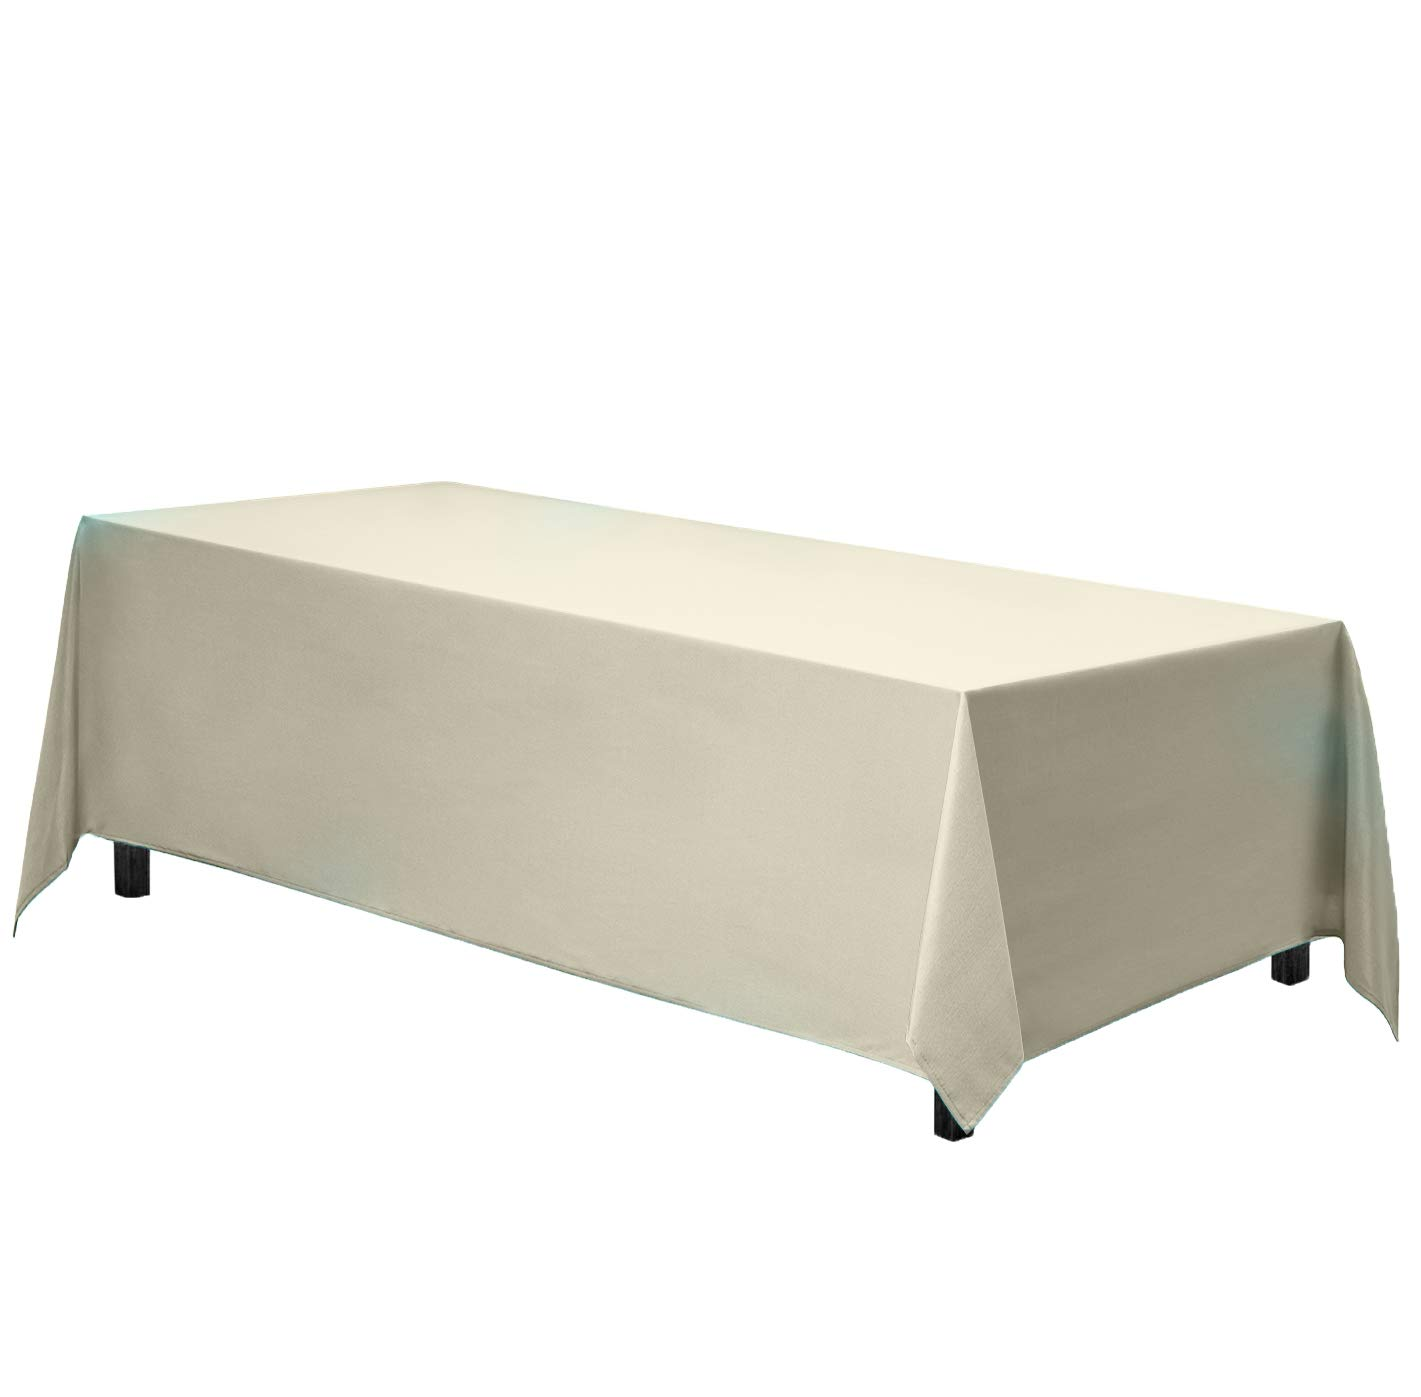 Gee Di Moda Rectangle Tablecloth - 90 x 156 Inch - Ivory Rectangular Table Cloth for 8 Foot Table in Washable Polyester - Great for Buffet Table, Parties, Holiday Dinner, Wedding & More